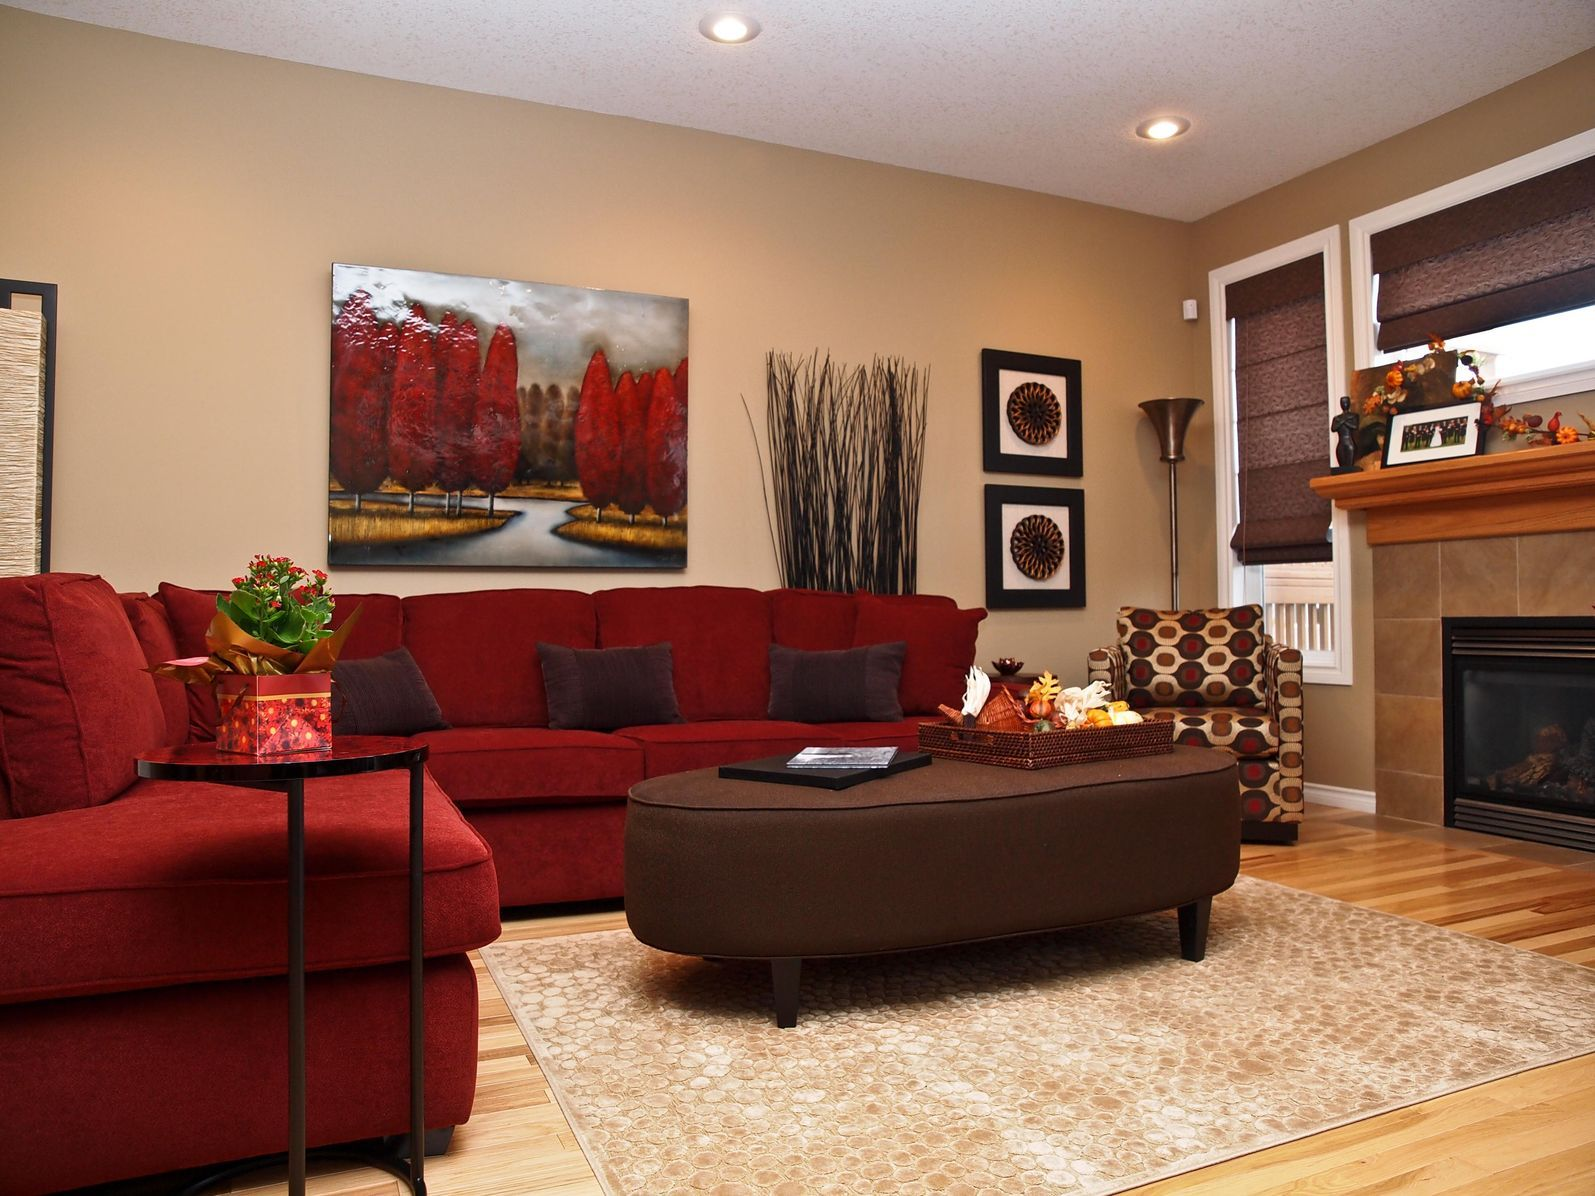 Red Sofa Design Living Room 17 Best Ideas About Red Sofa Decor On Pinterest Red Couch Living